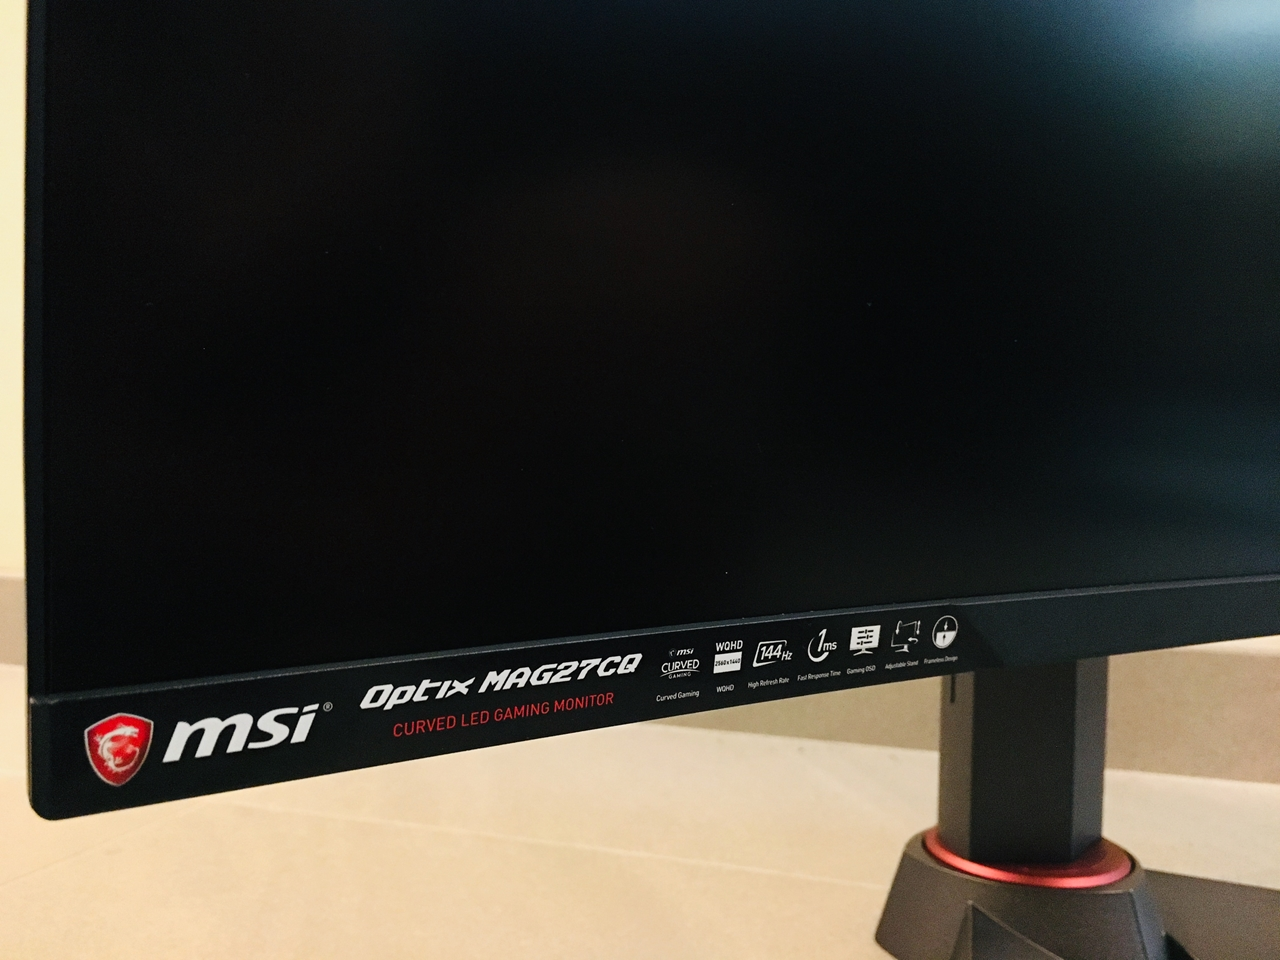 MSI Optix MAG27CQ Curved Gaming Monitor Review - FunkyKit